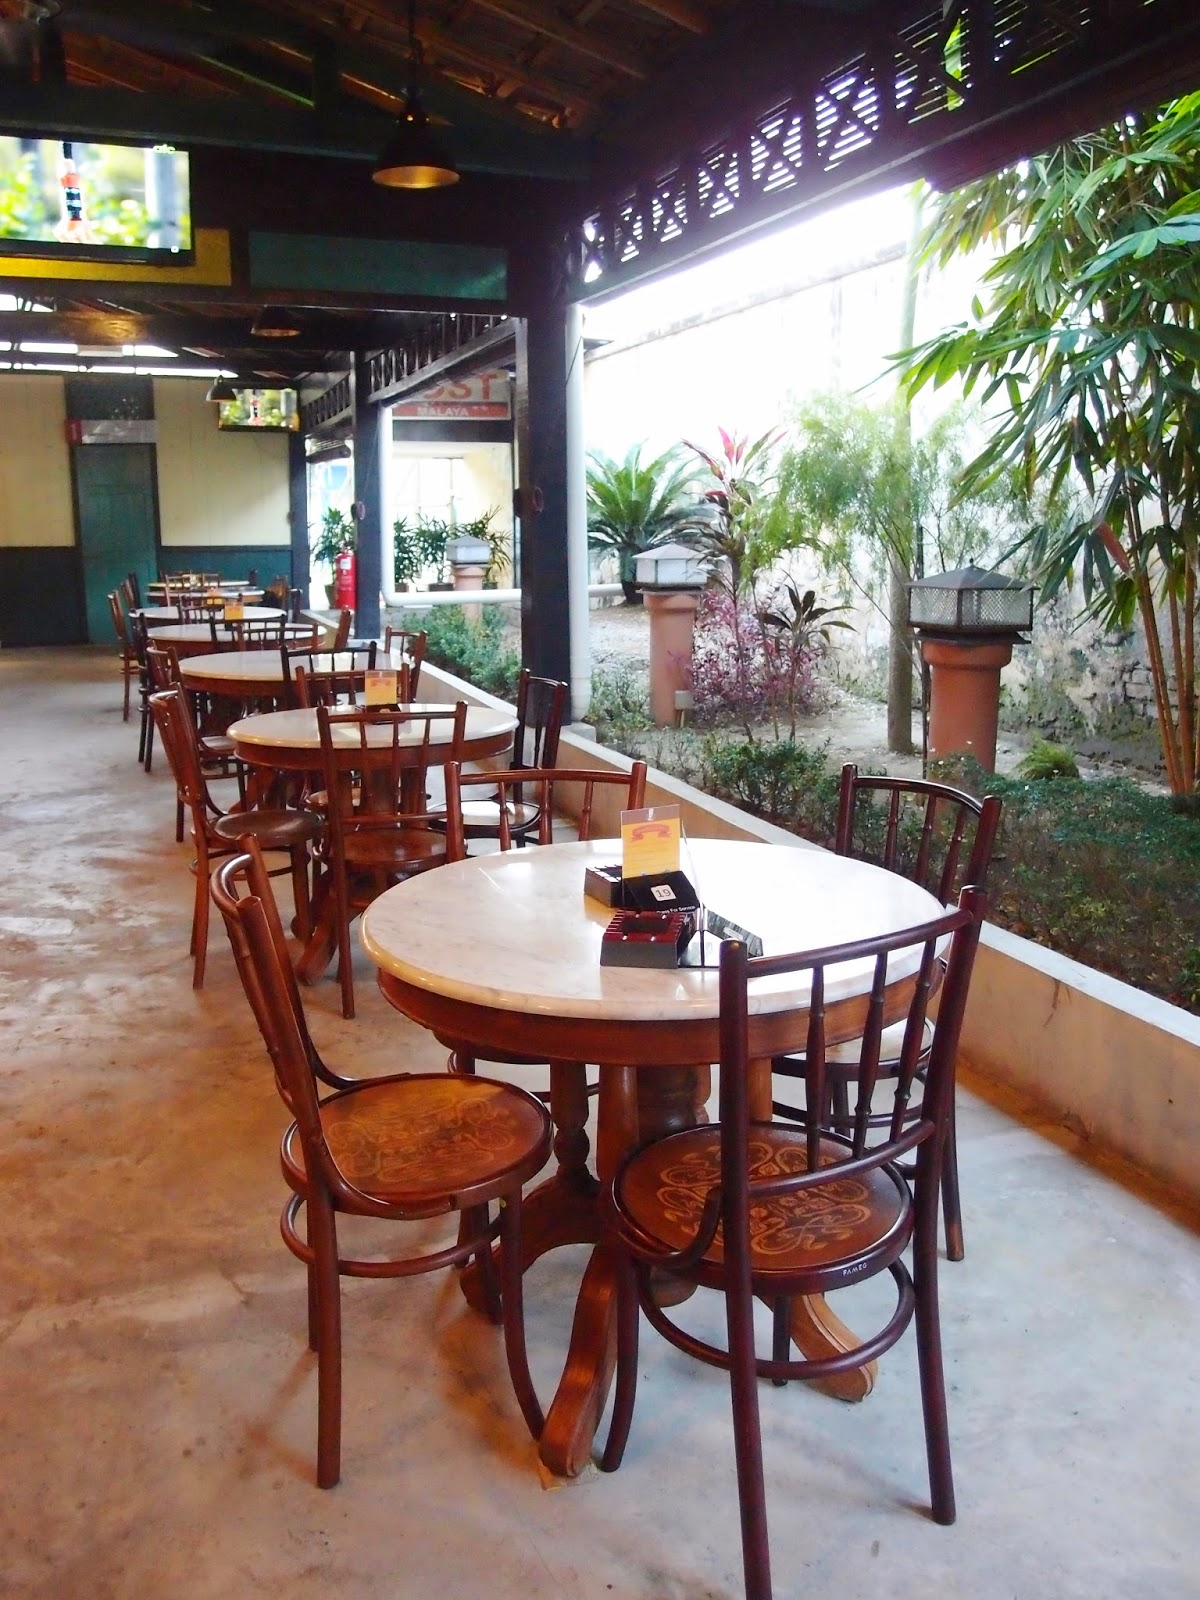 Marble Top Dining Tables With Old School Kopitiam Chairs Complete The Decor For This Charming Place